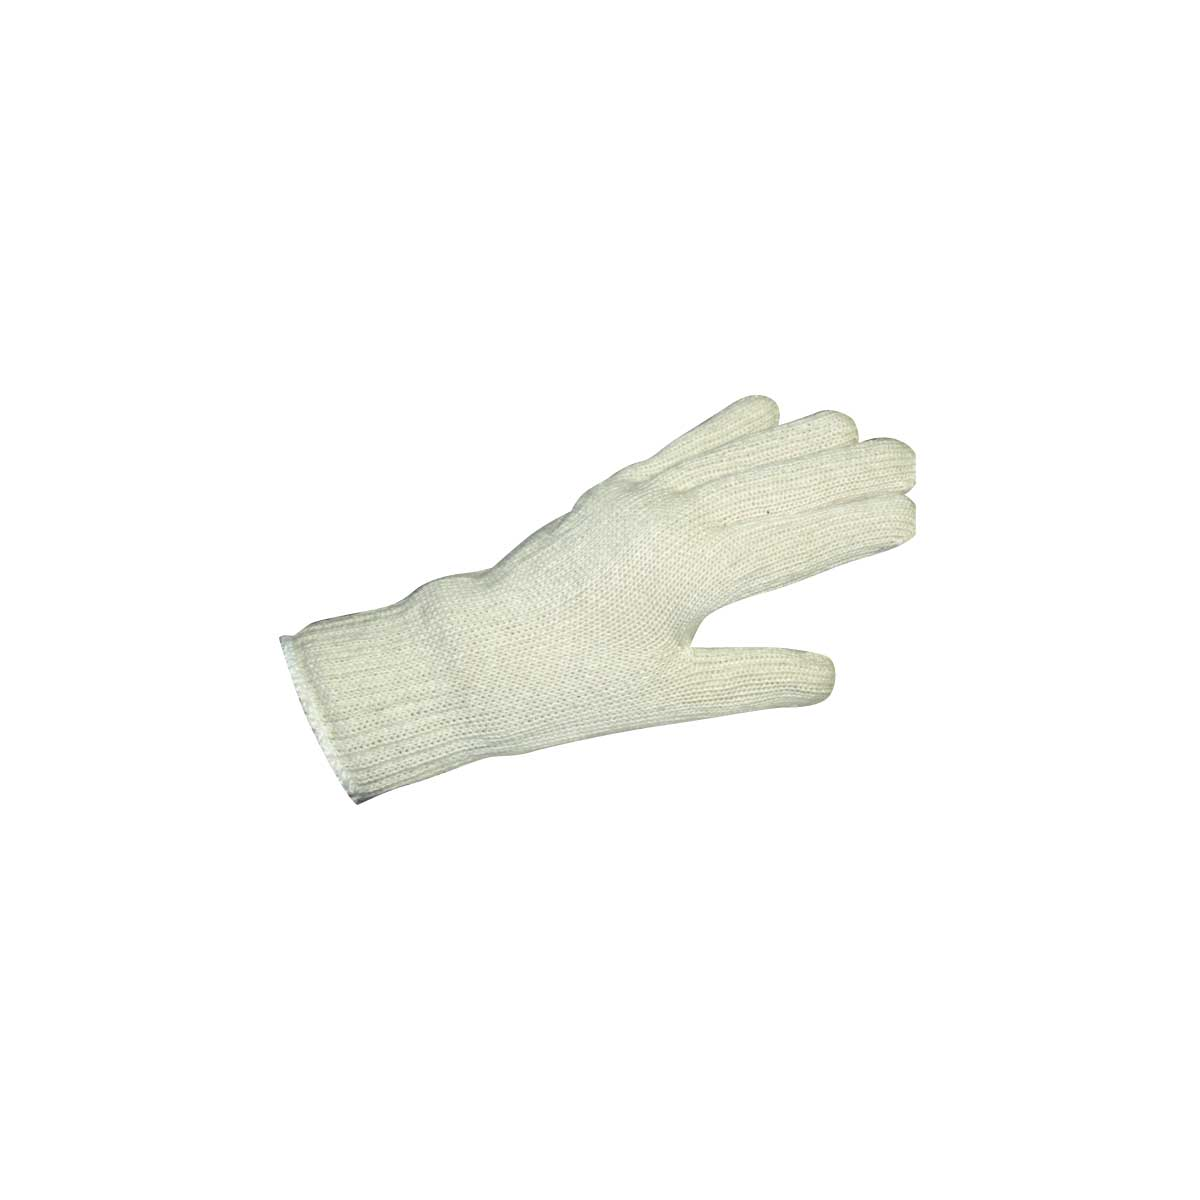 American Safety Glove Liners White Cotton Knit